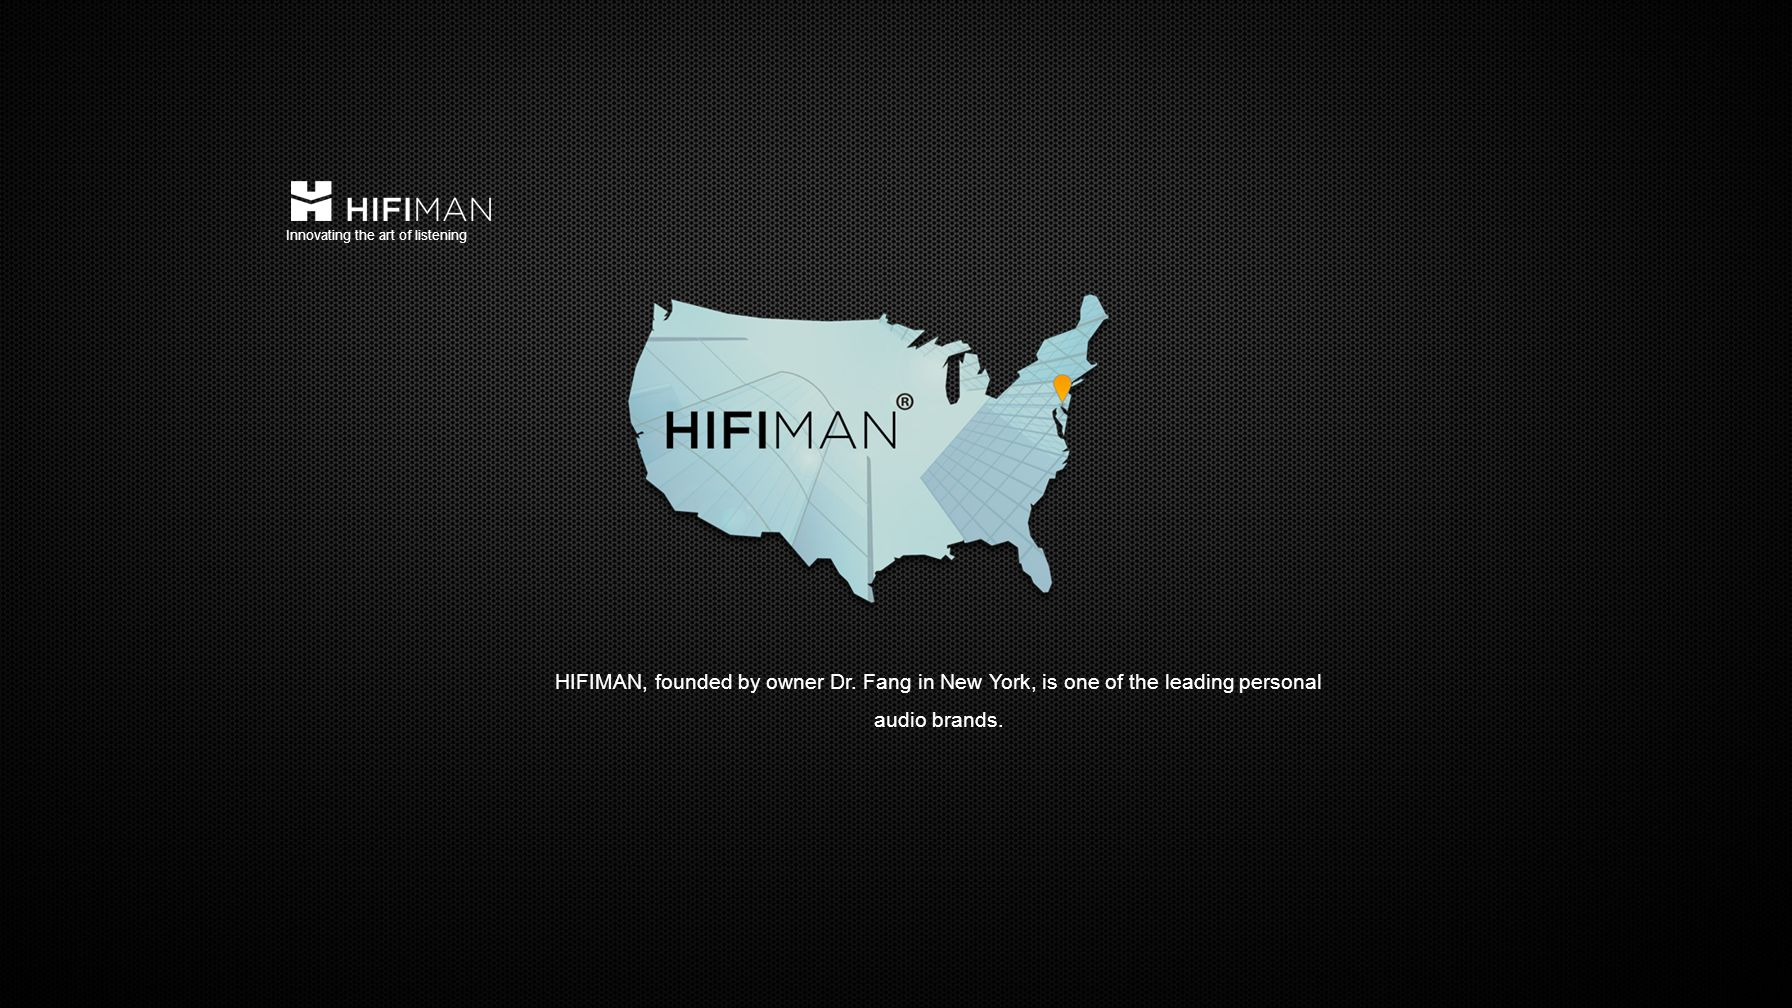 HIFIMAN, founded by owner Dr. Fang in New York, is one of the leading personal audio brands.